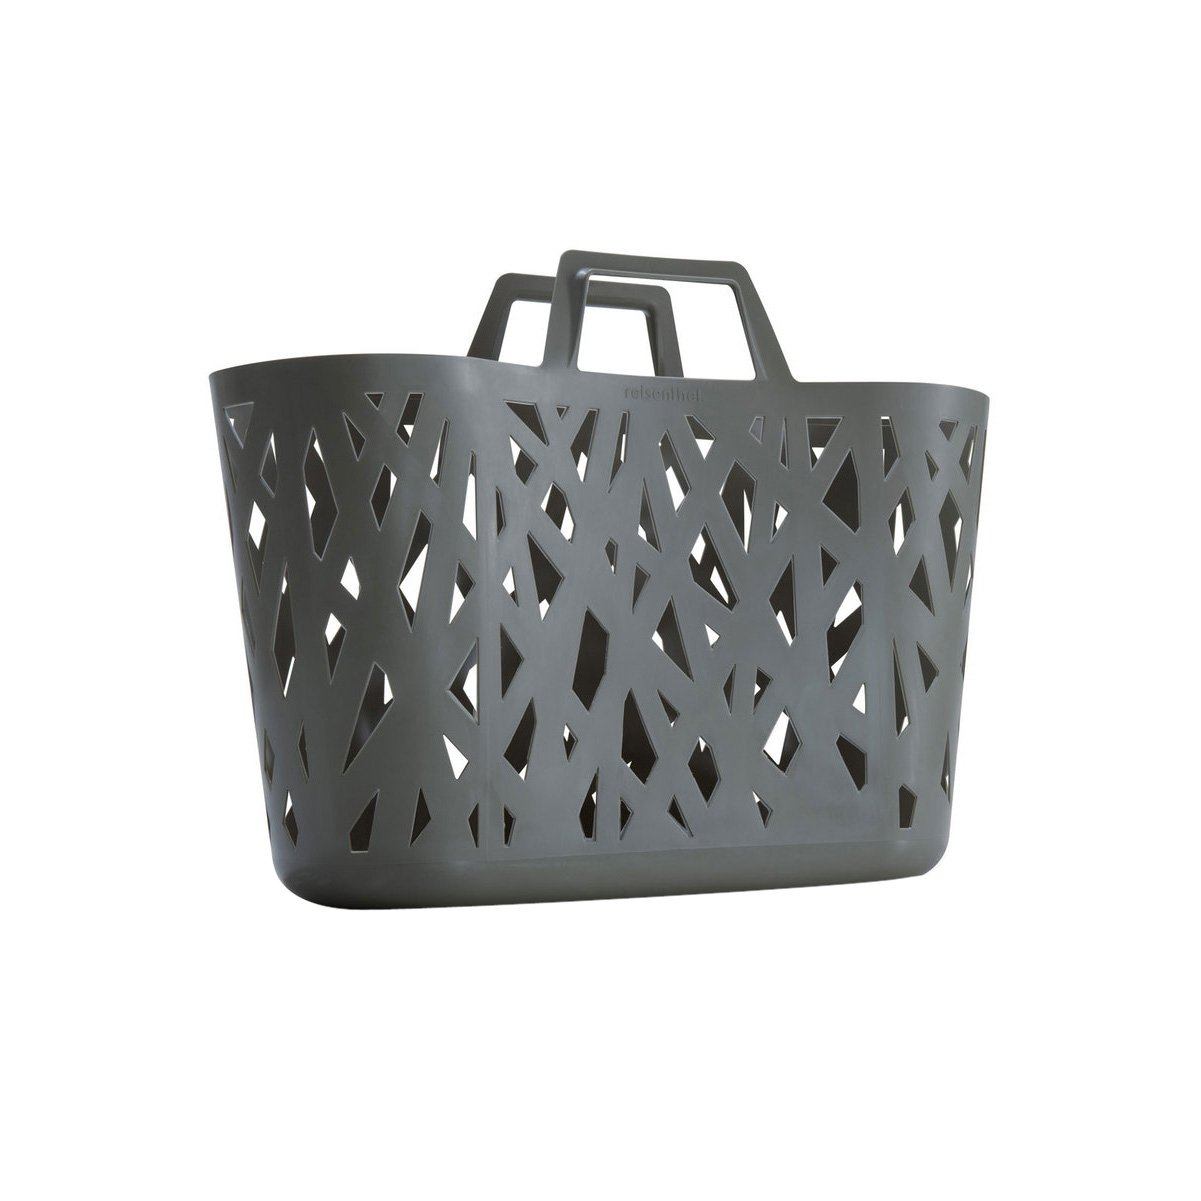 reisenthel nestbasket, Beach Basket and Shopping Tote, Anthracite